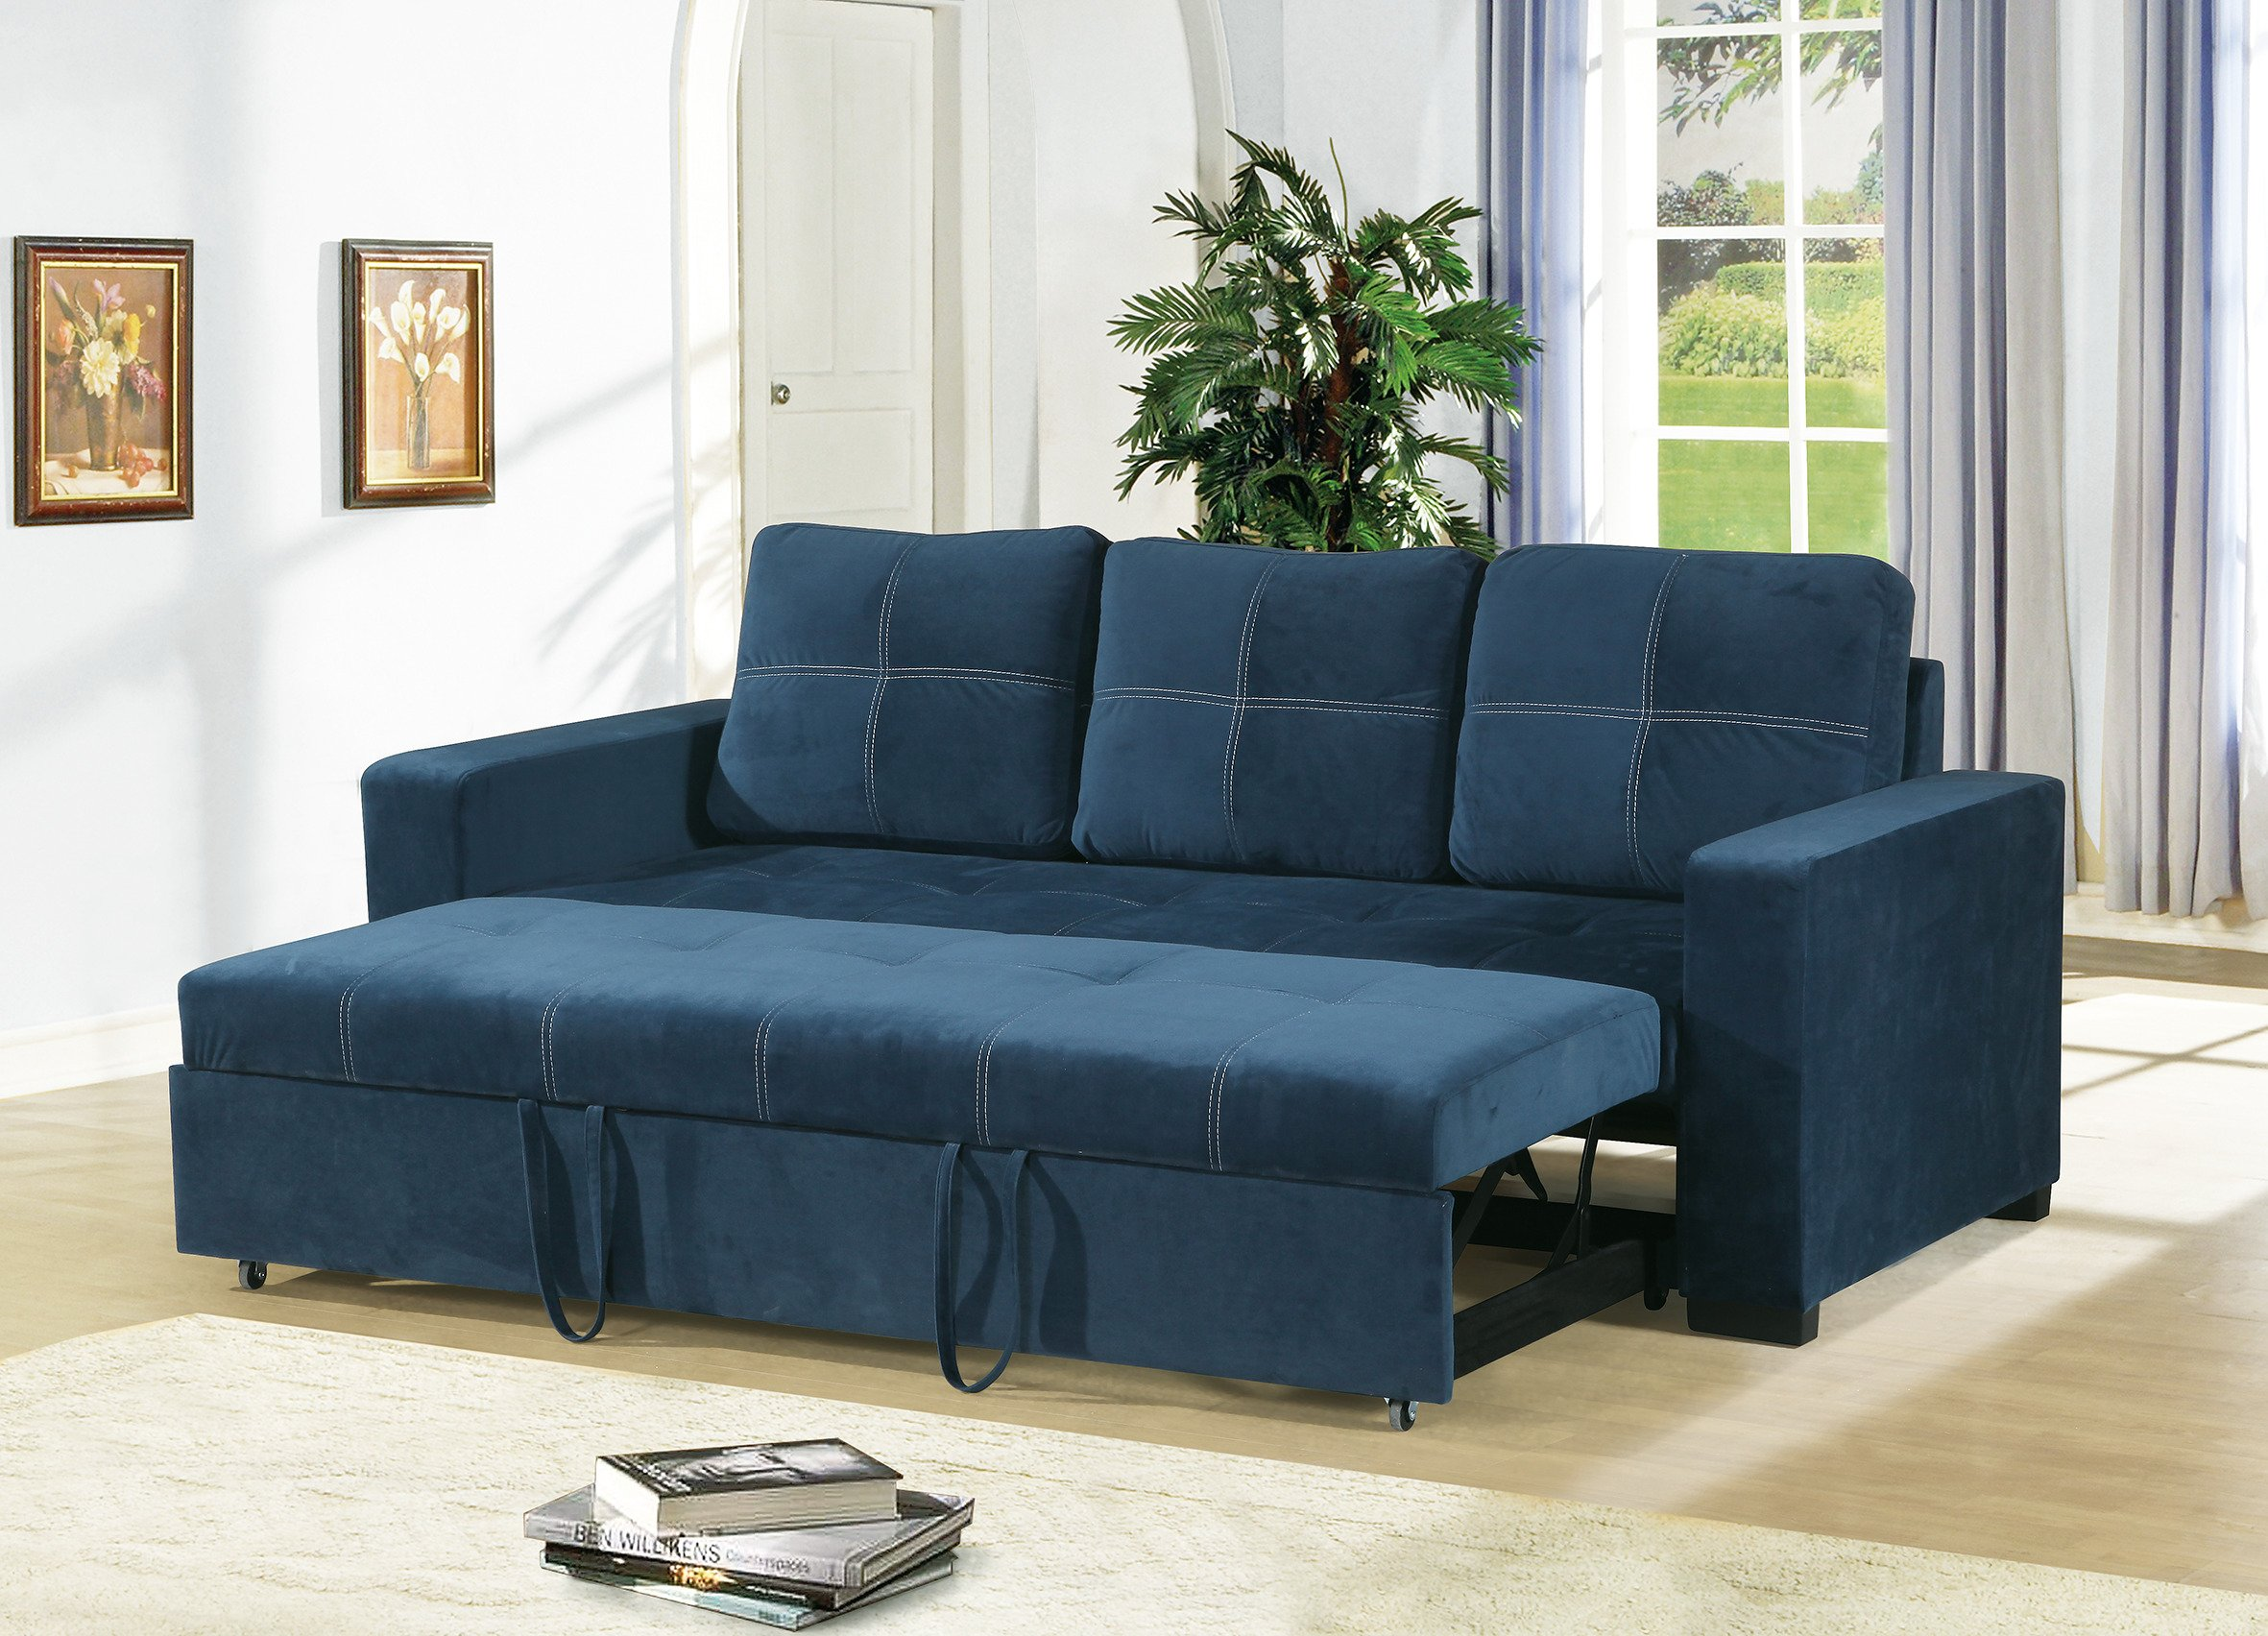 Get Quotations Convertible Sofa Bed Bobkona Living Room W Pull Out Accent Sching Comfort Couch Navy